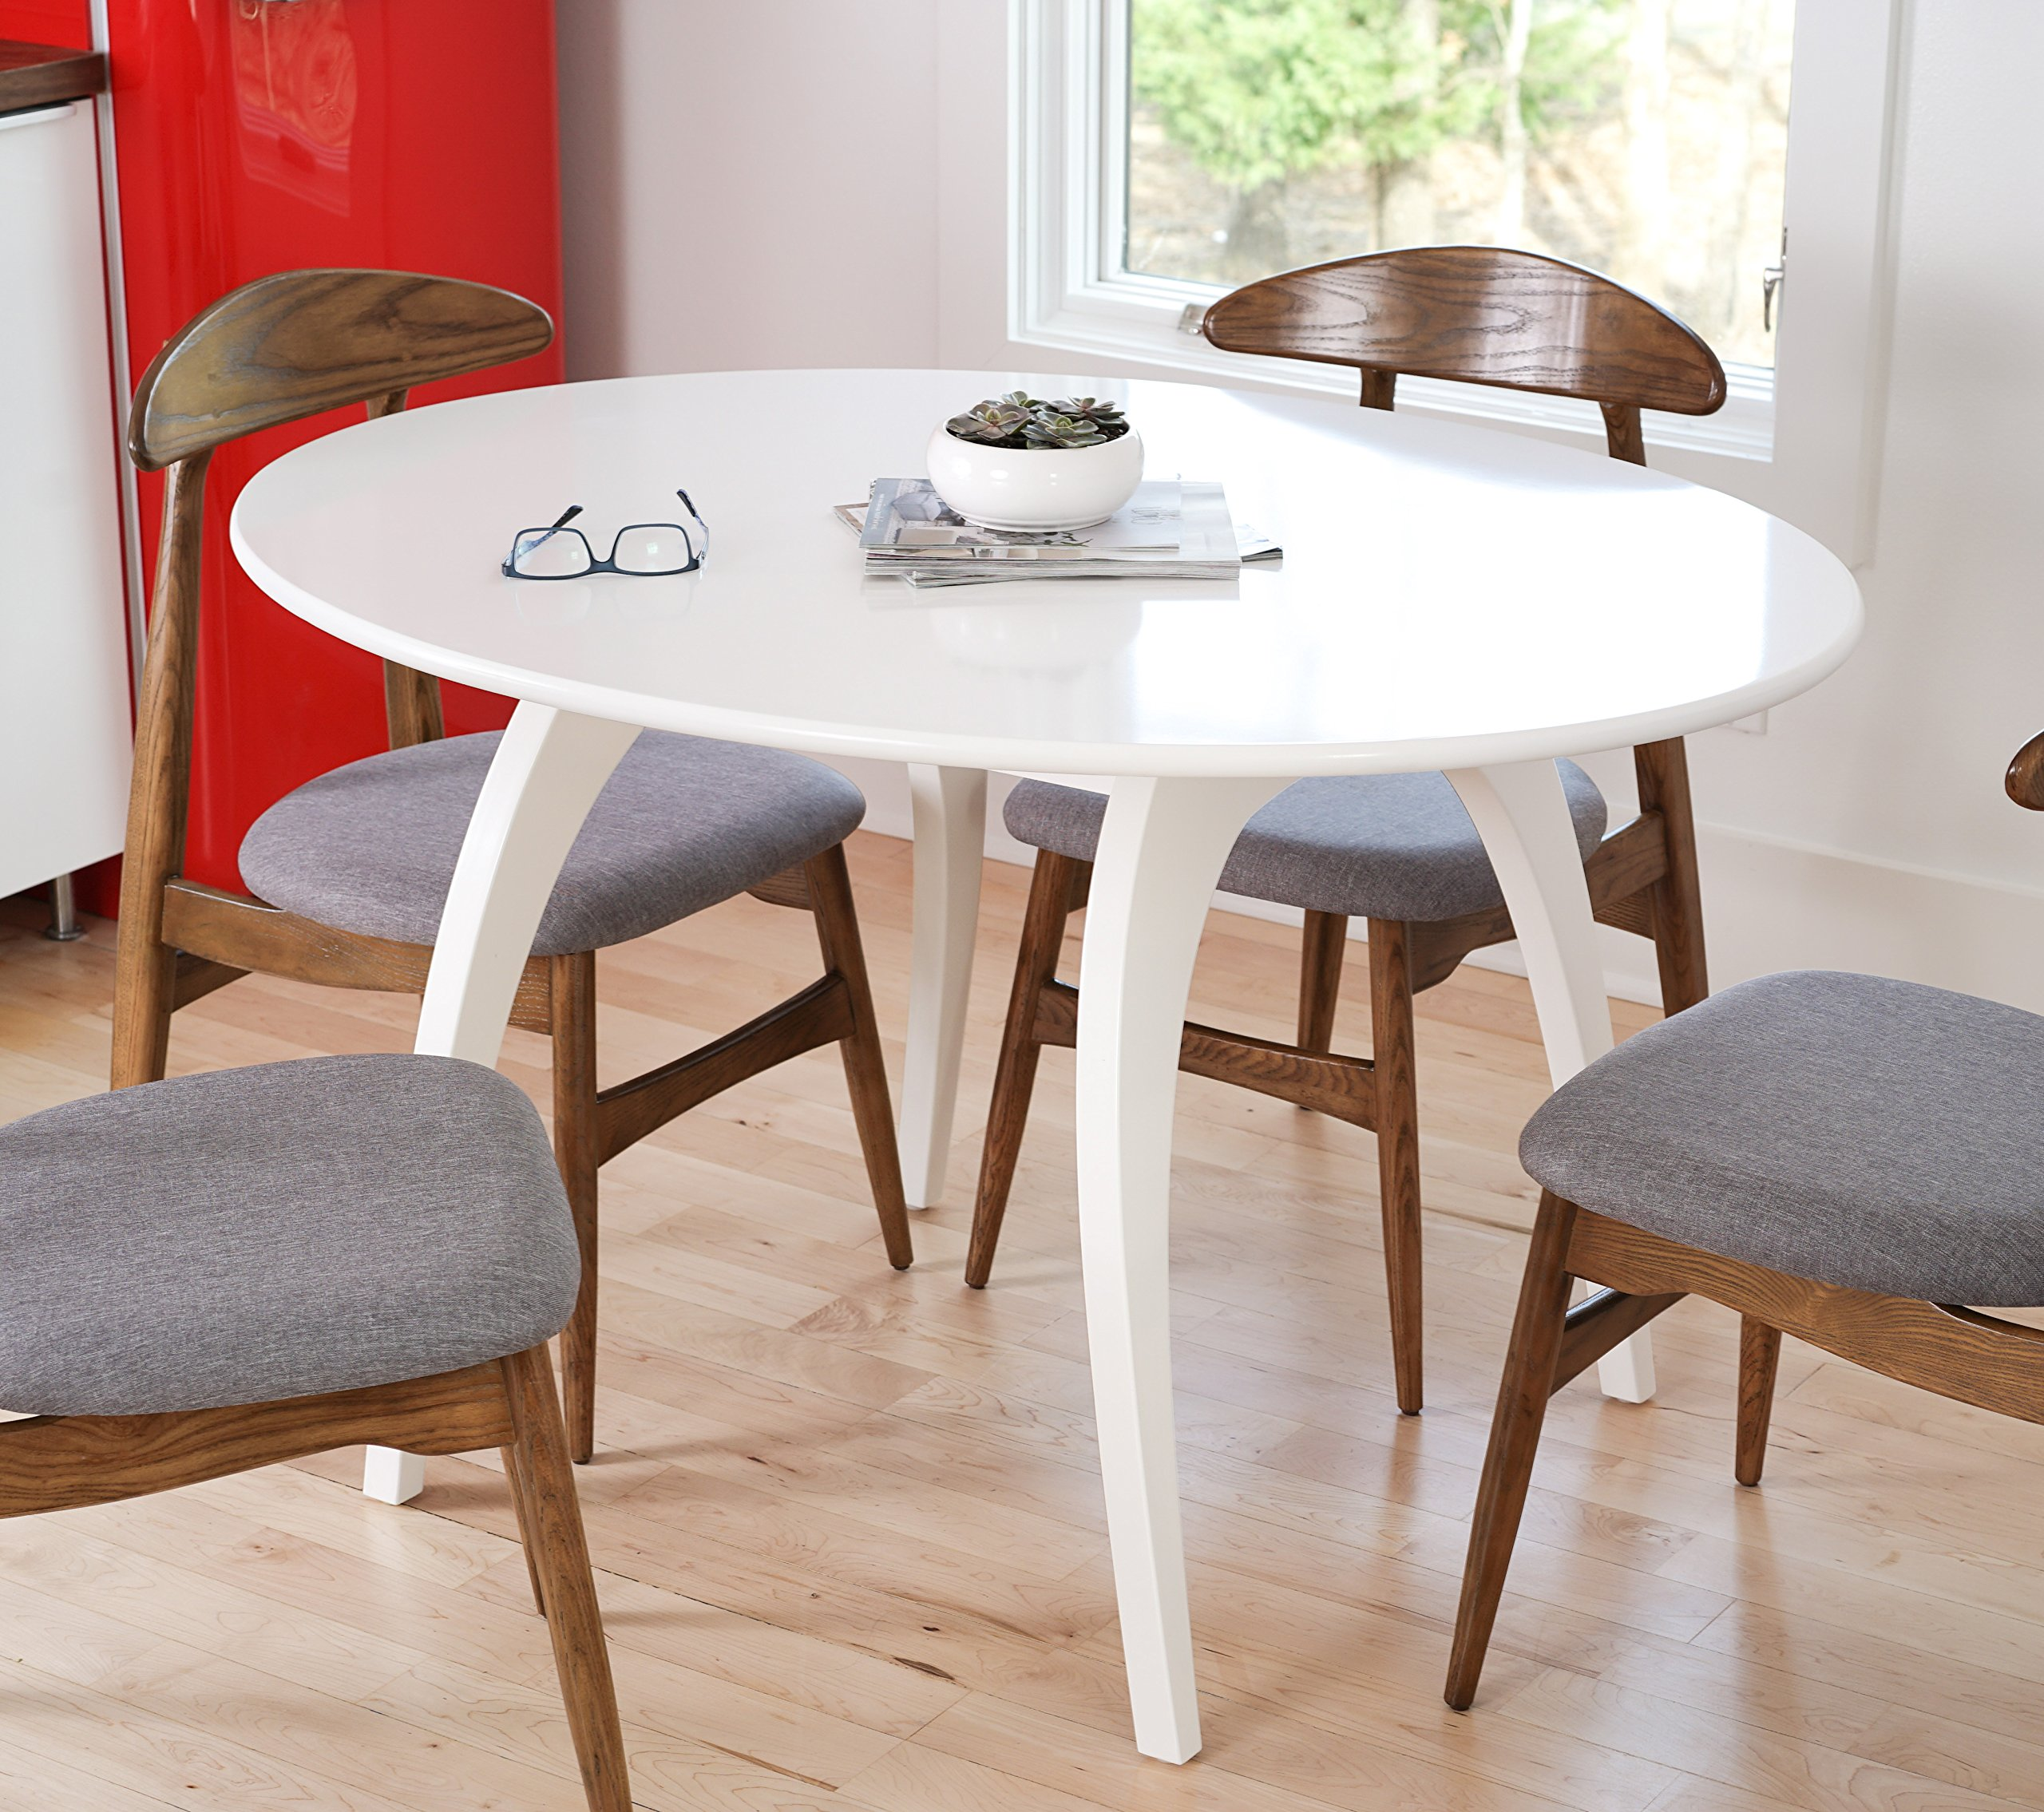 49+ Mid Century Modern Oval Dining Table Images